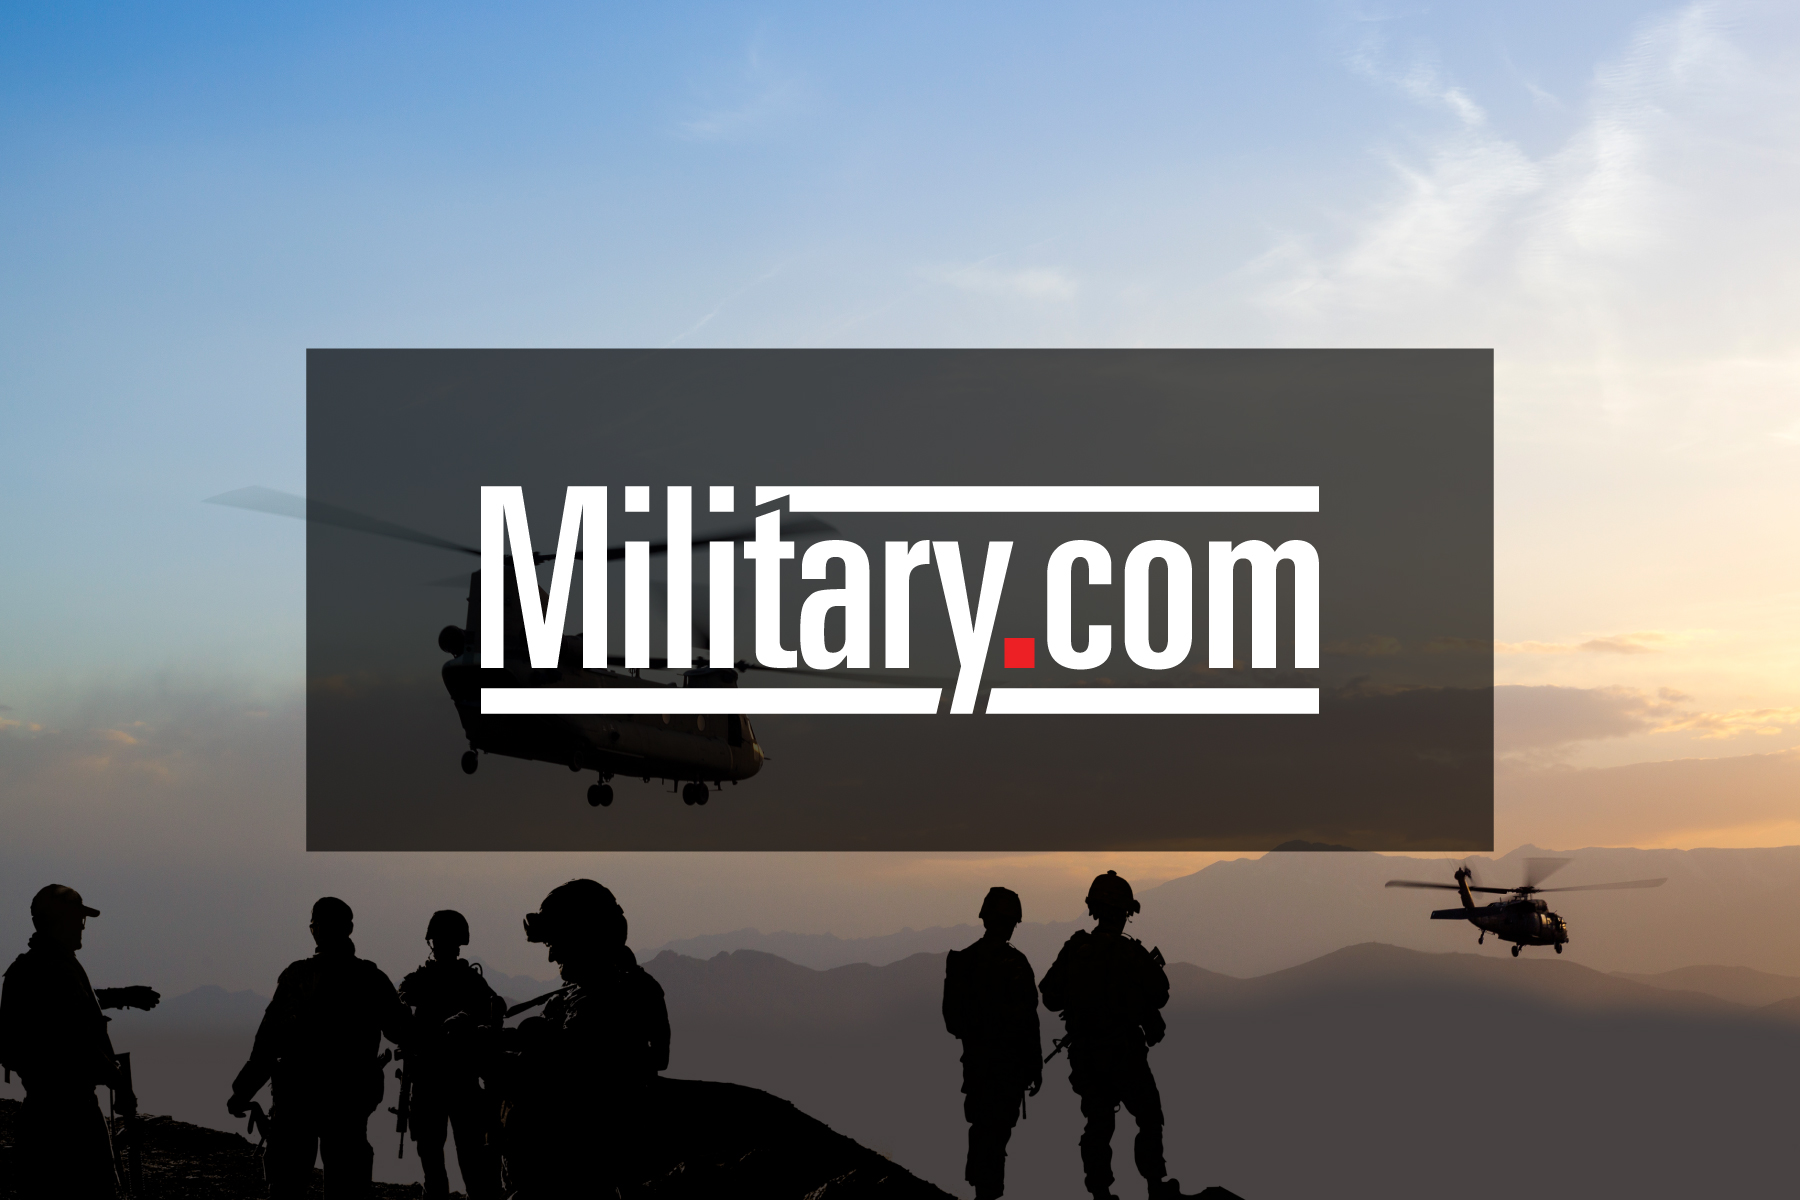 VA Loan Forms | Military.com